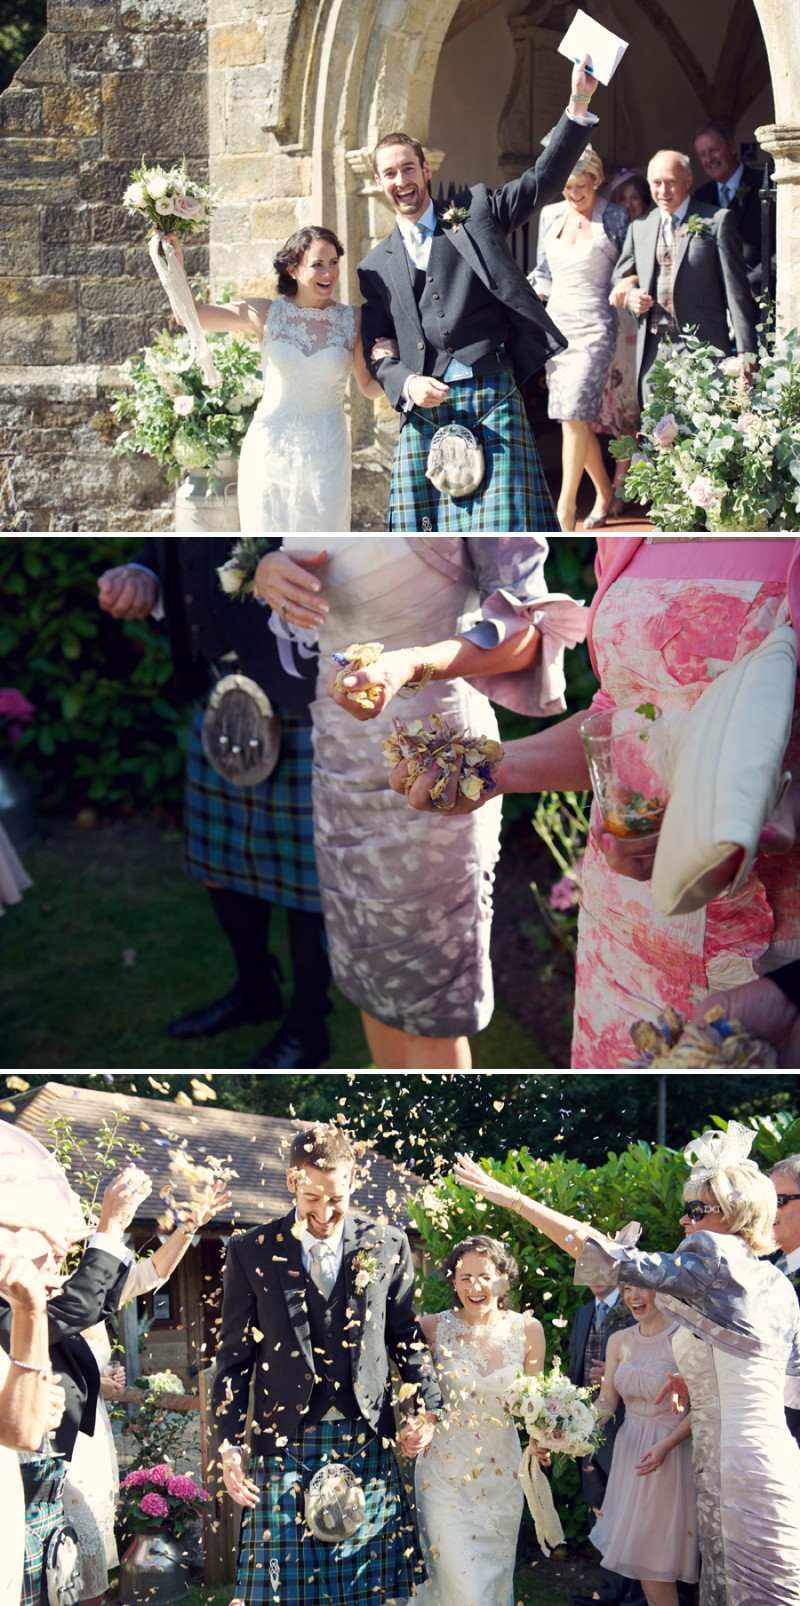 A Rustic Scottish And English Themed Woodland Wedding In Surrey With A Lusan Mandongus Dress And A Thistle And Pink Rose Bouquet Photographed by Rebecca Douglas._0005